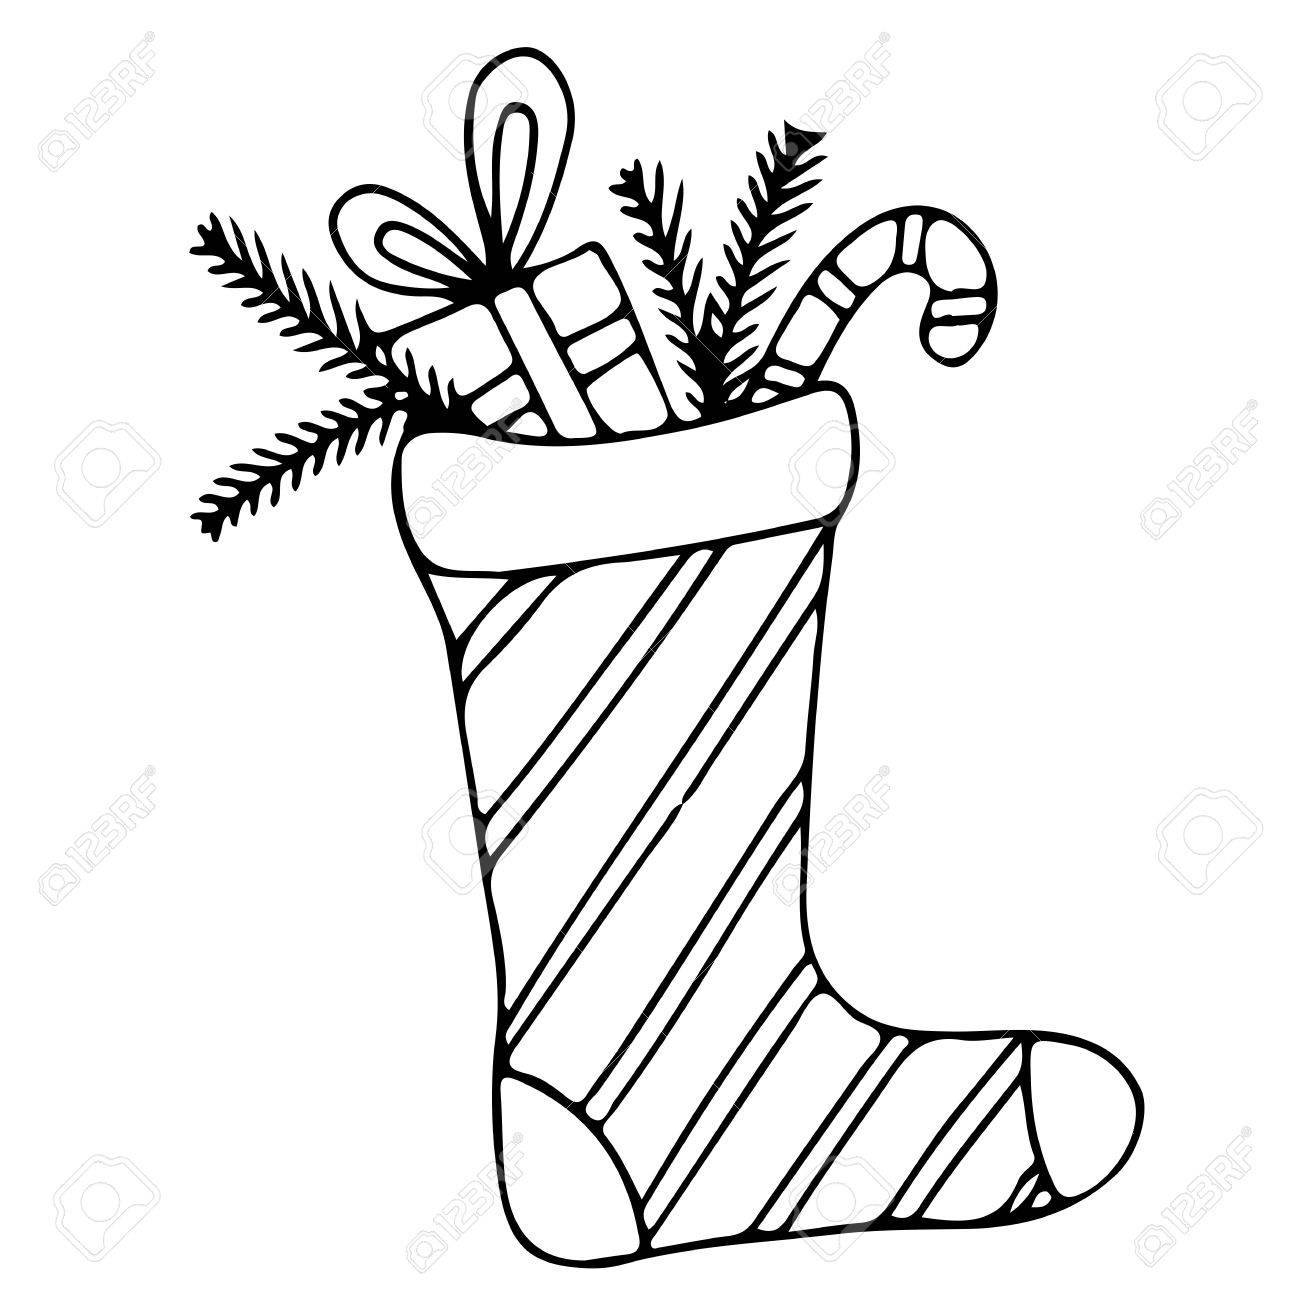 Black And White Christmas Stockings.Christmas Stocking With Candy And Gift Mono Color Black Line